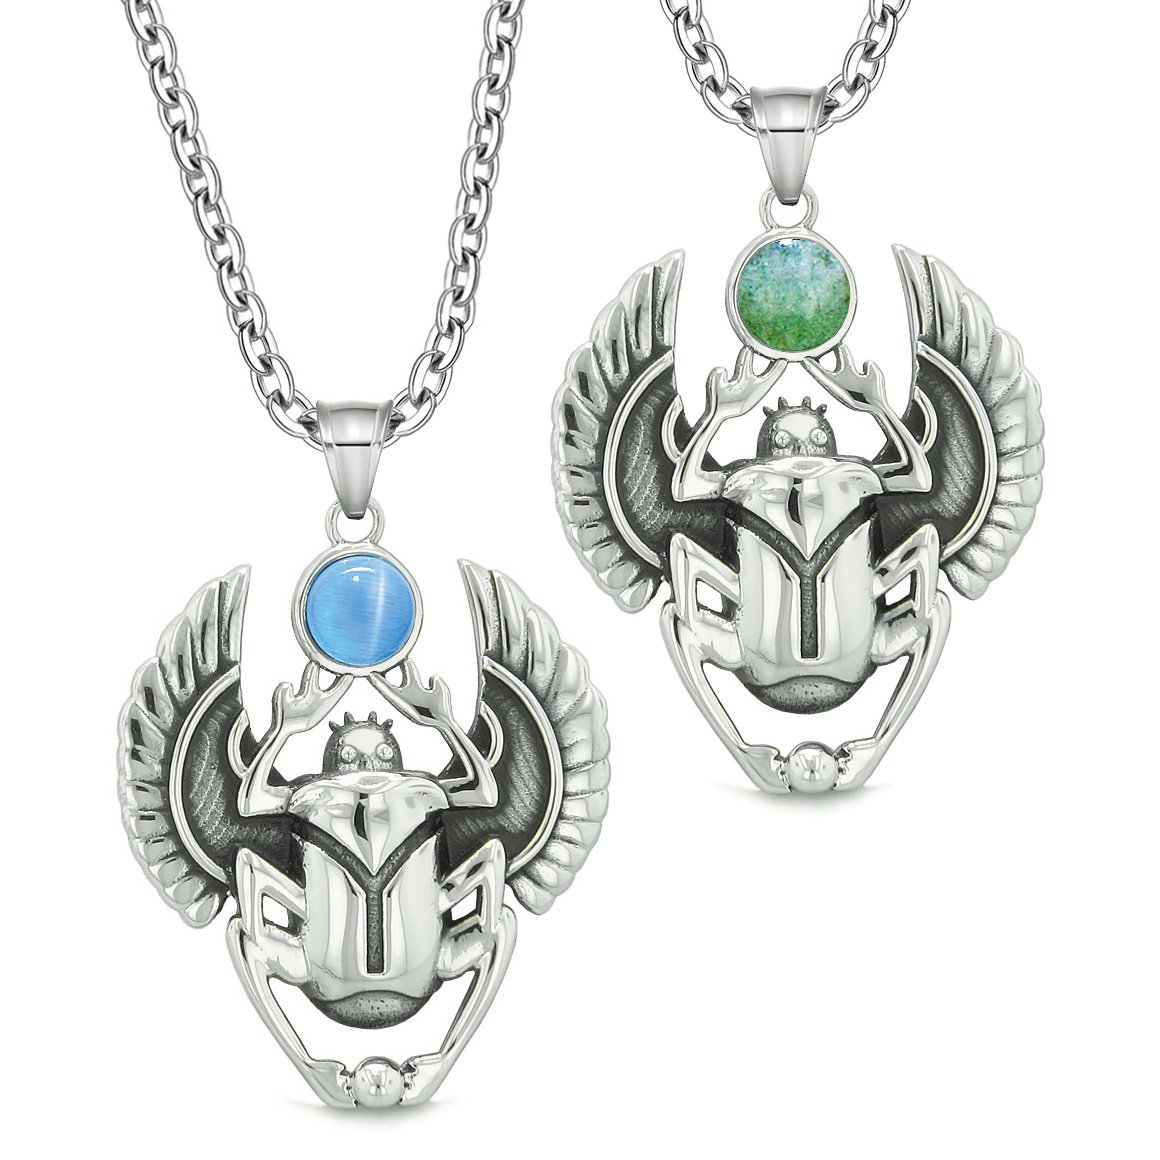 Scarab Egyptian Rebirth Spiritual Life Amulet Couples Green Quartz Blue Simulated Cat Eye Necklaces